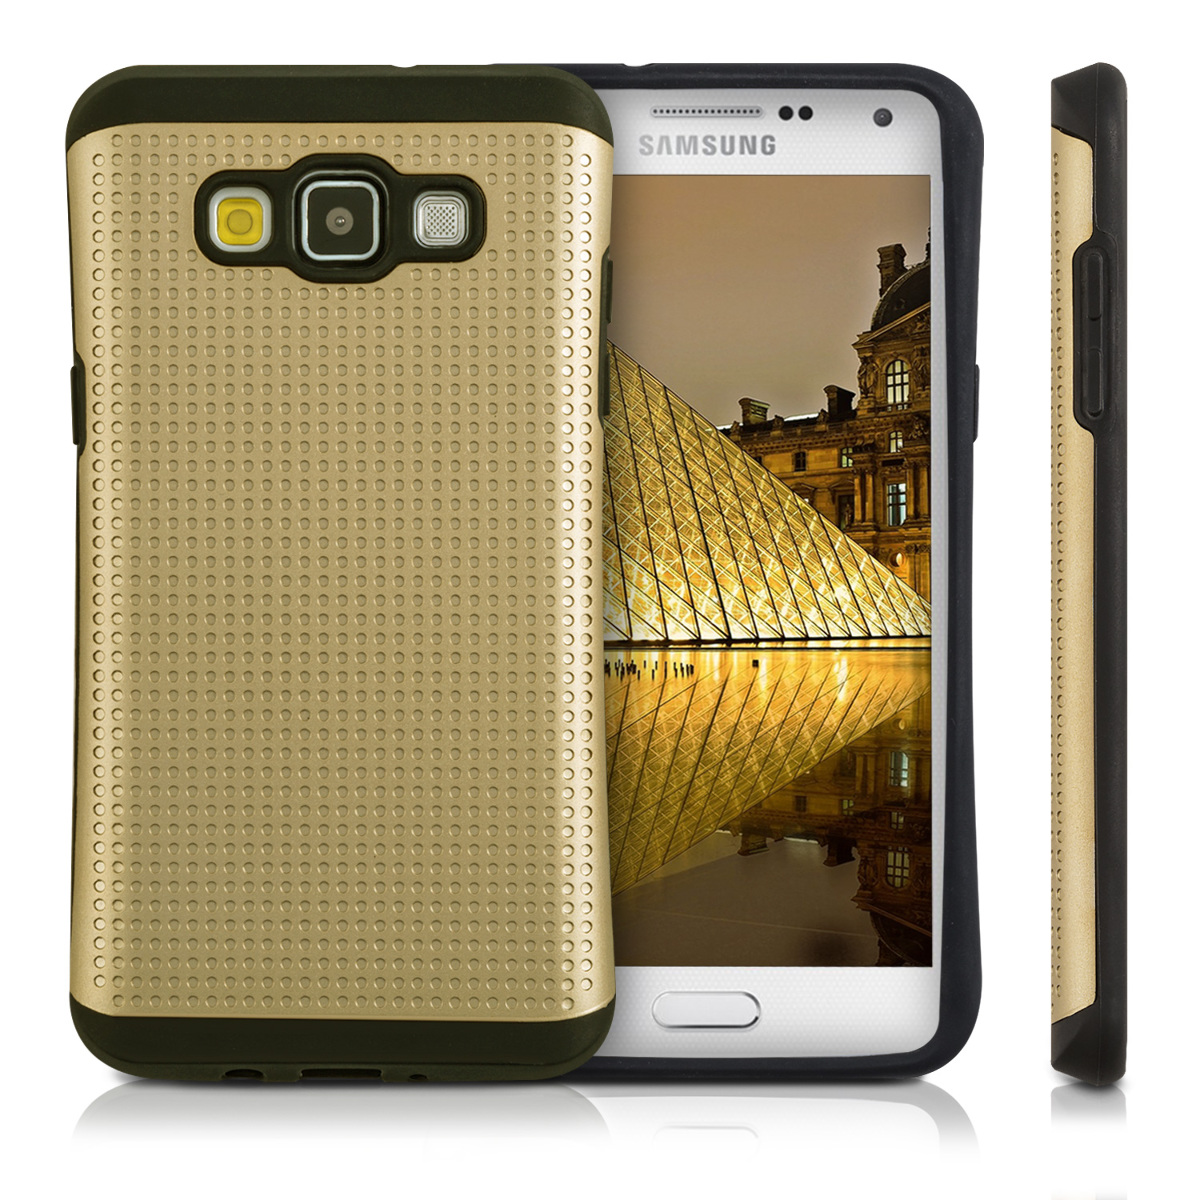 kwmobile-ETUI-DE-PROTECTION-POUR-SAMSUNG-GALAXY-A3-2015-HYBRID-CHIC-HOUSSE